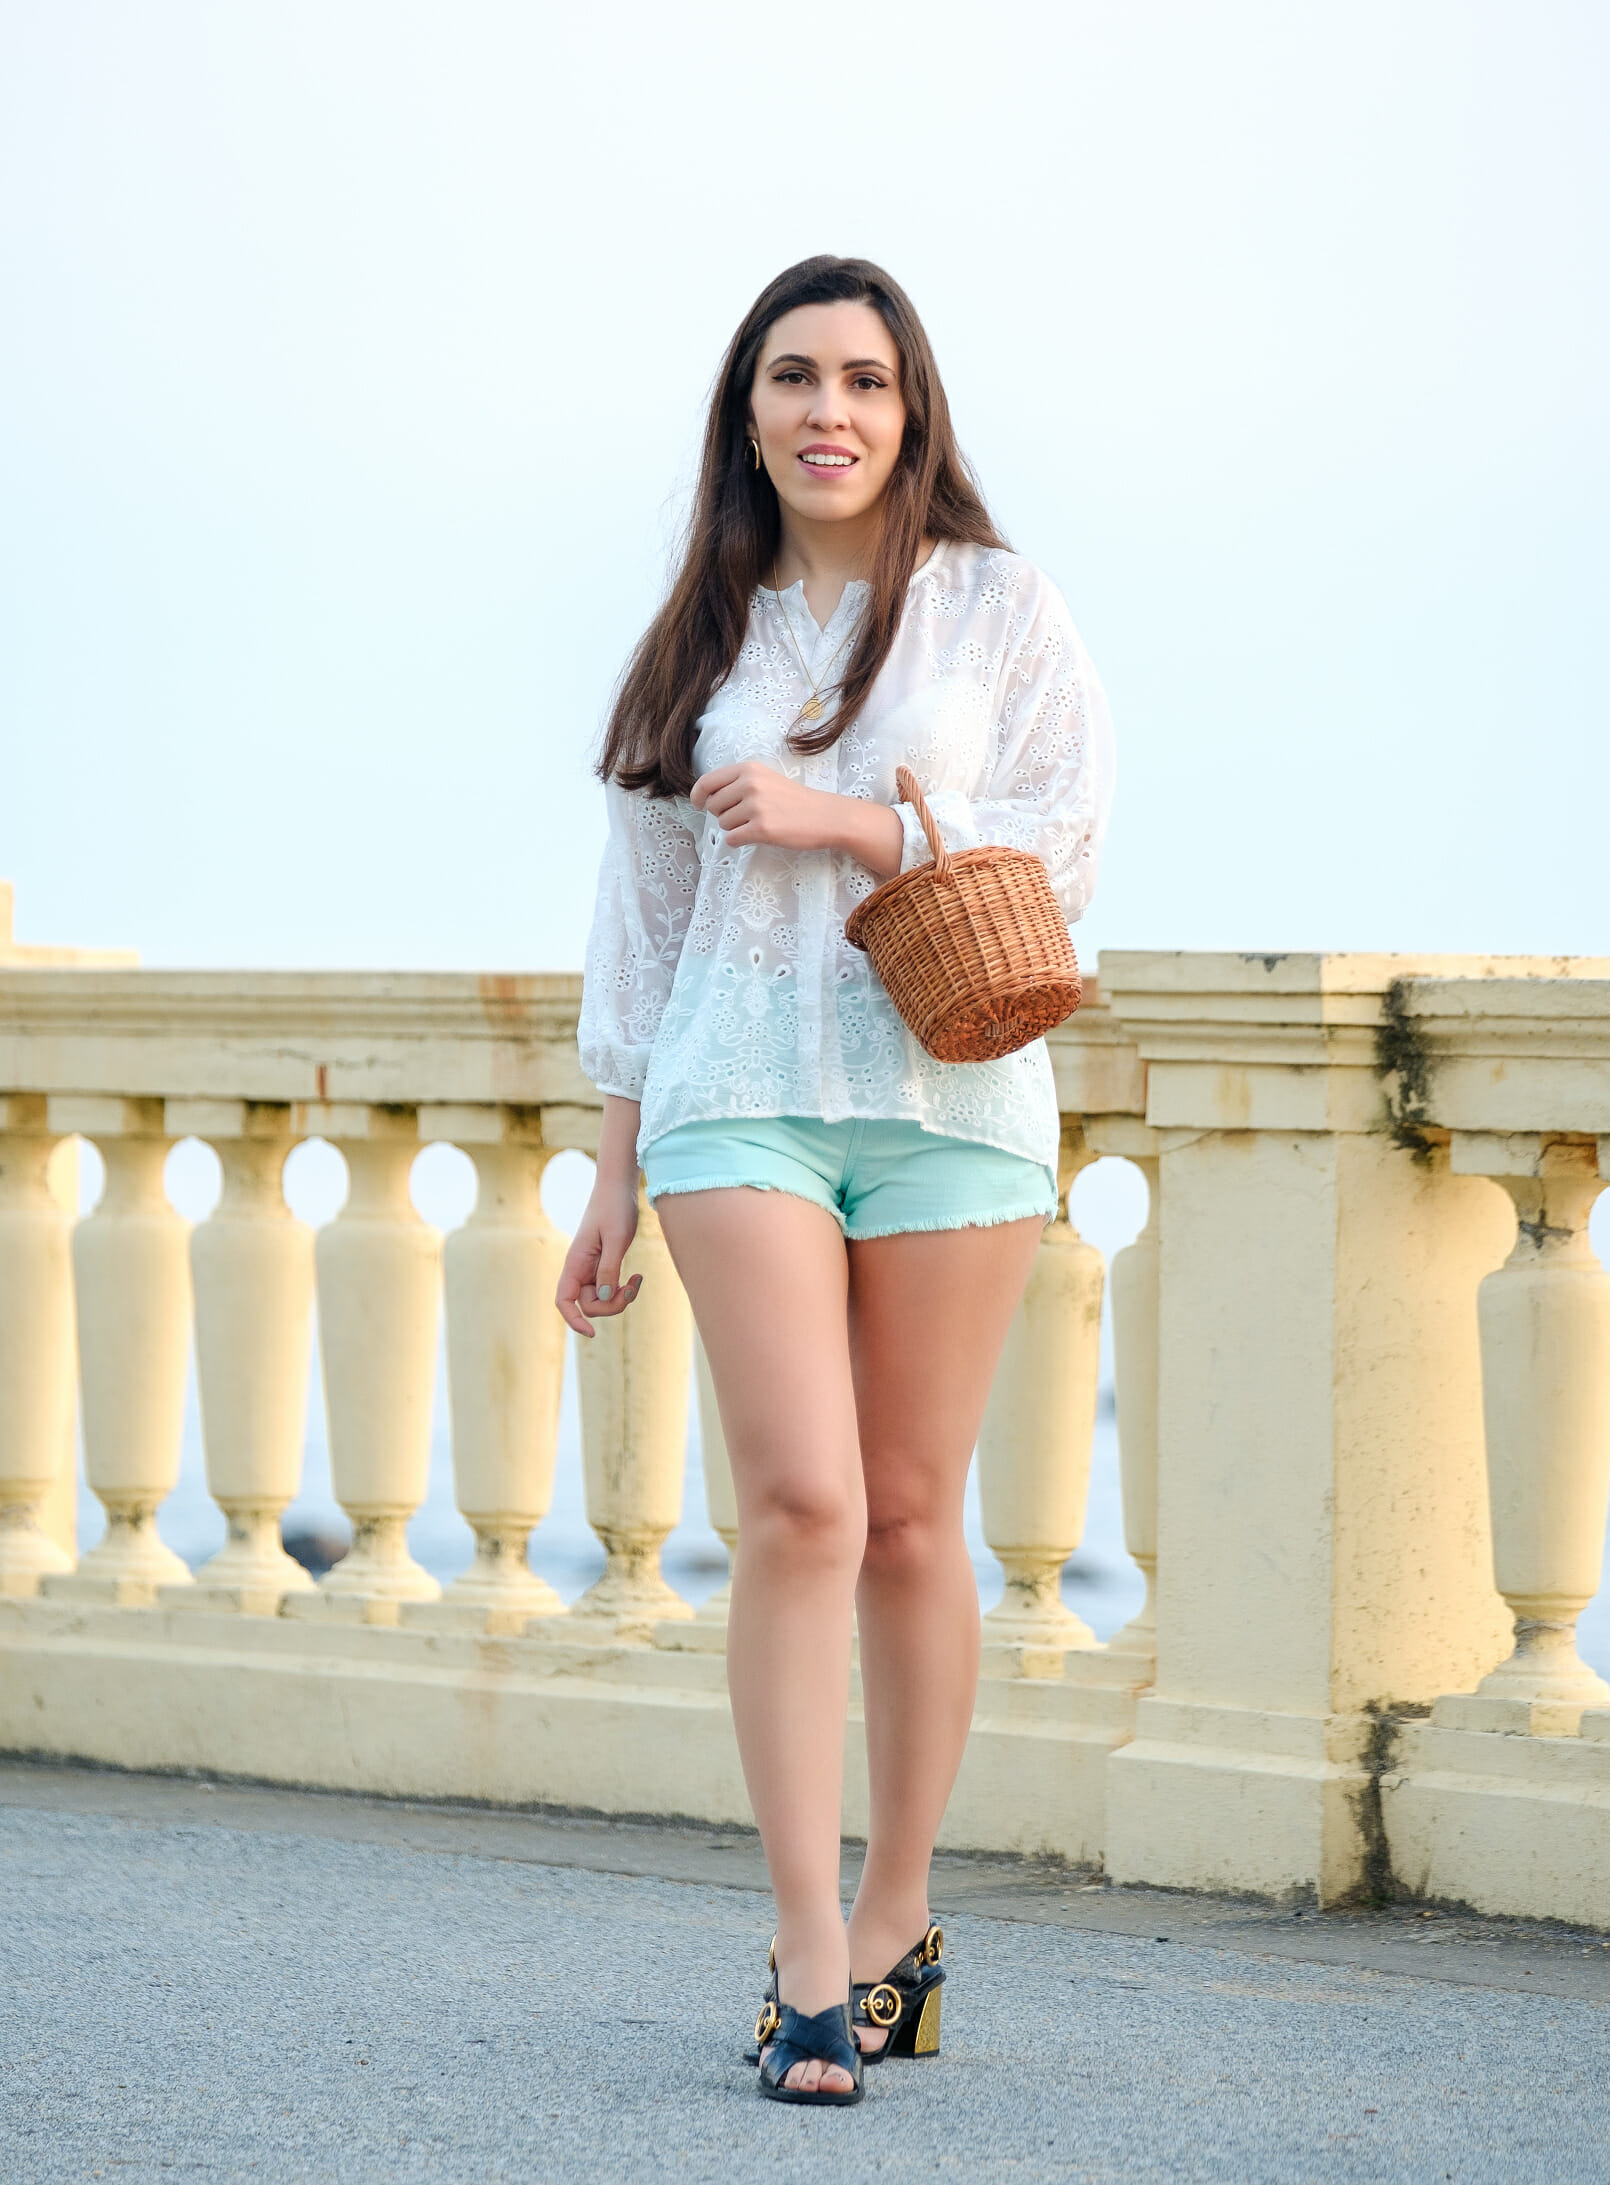 Le Fashionaire fashion inspiration white english embroidered zara shirt mint denim bershka shorts gold black leather uterque sandals la petite sardine straw bag 2046 EN fashion inspiration white english embroidered zara shirt mint denim bershka shorts gold black leather uterque sandals la petite sardine straw bag 2046 EN